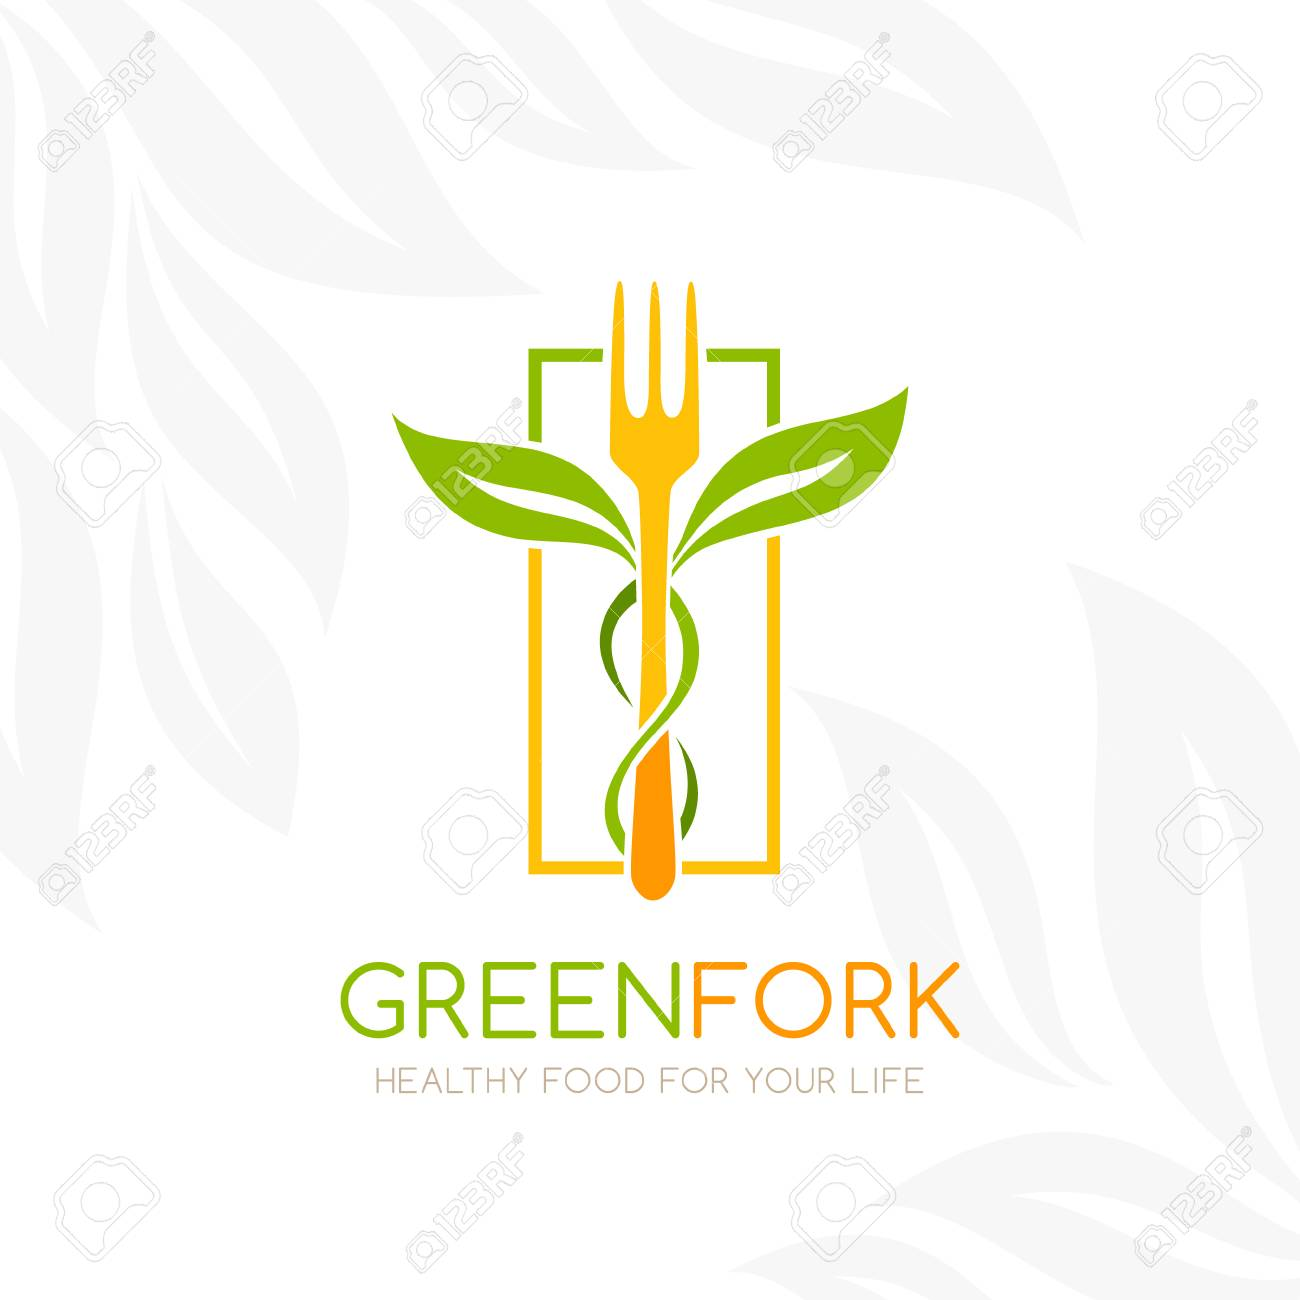 Vegetarian Restaurant Logo - restaurant logo ideas - tips from the pros